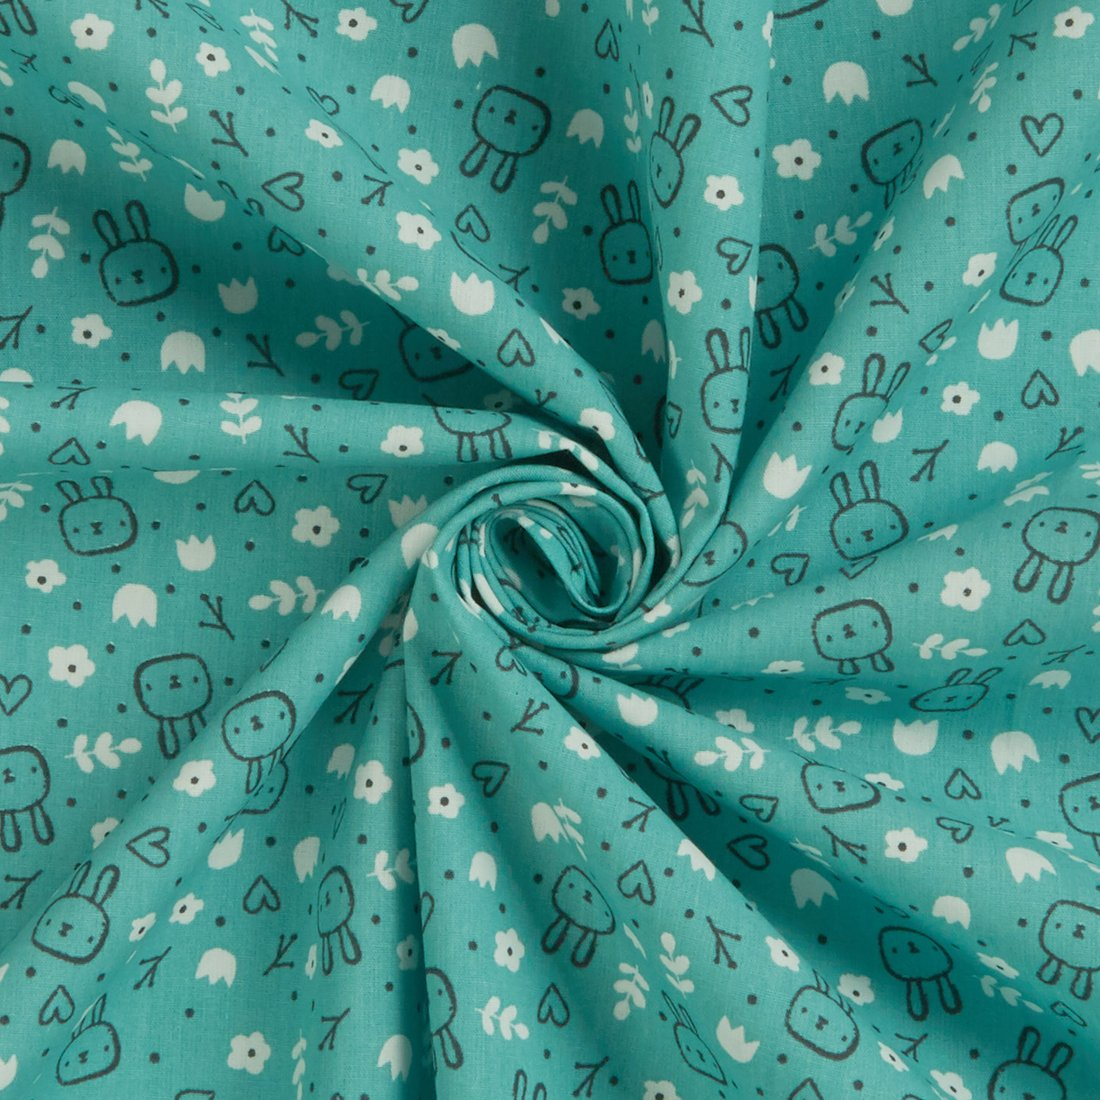 Sweet Bunny Brushed Cotton Duckegg Fabric